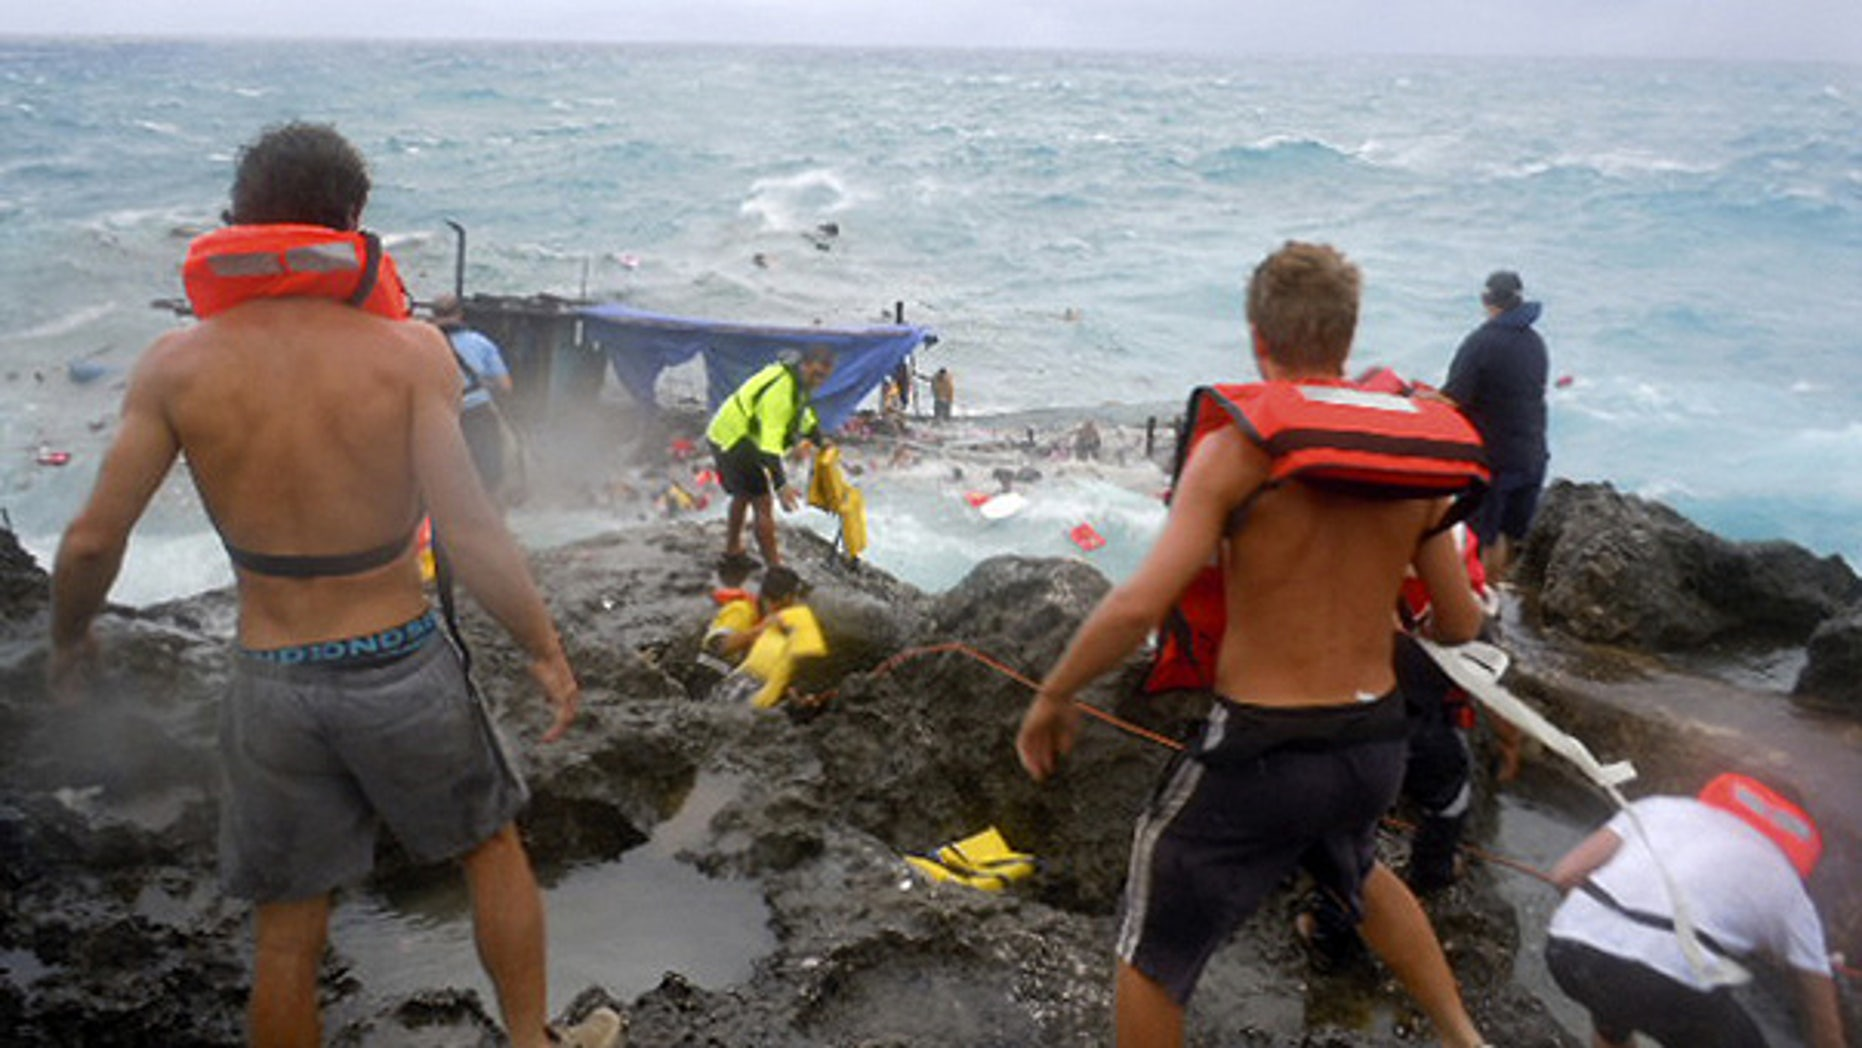 Dec. 15: People clamber on the rocky shore on Christmas Island during a rescue attempt as a boat smashes into rocks.